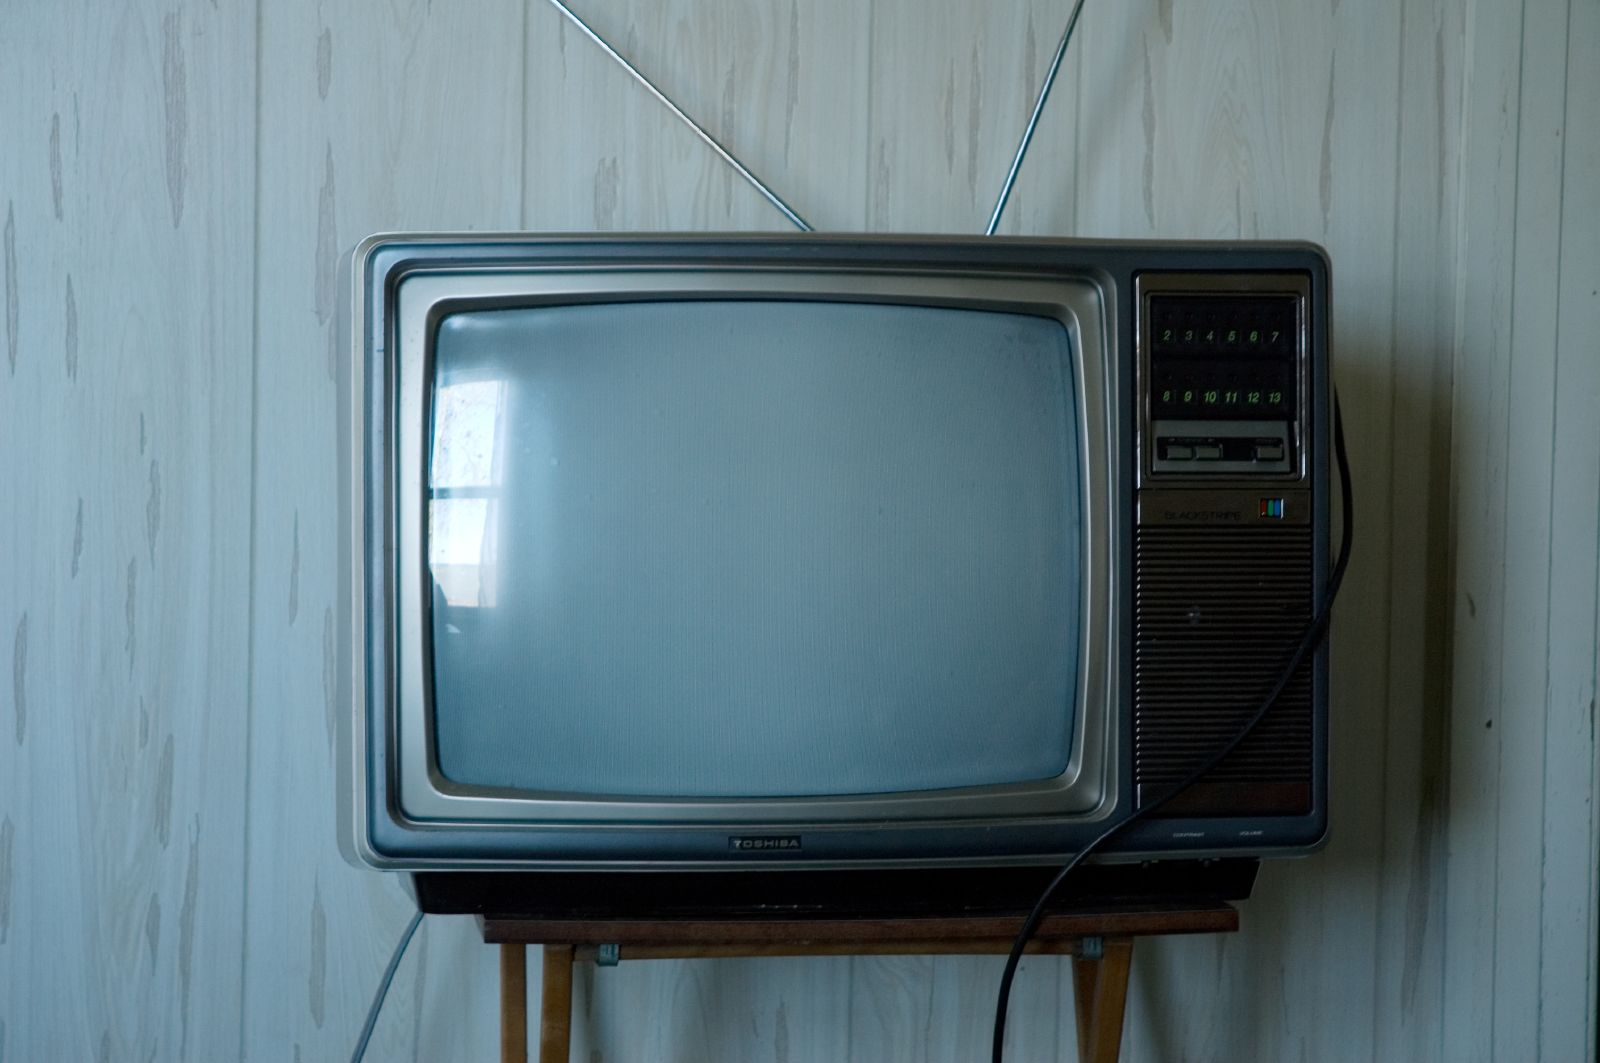 Old Television Set with Antenna